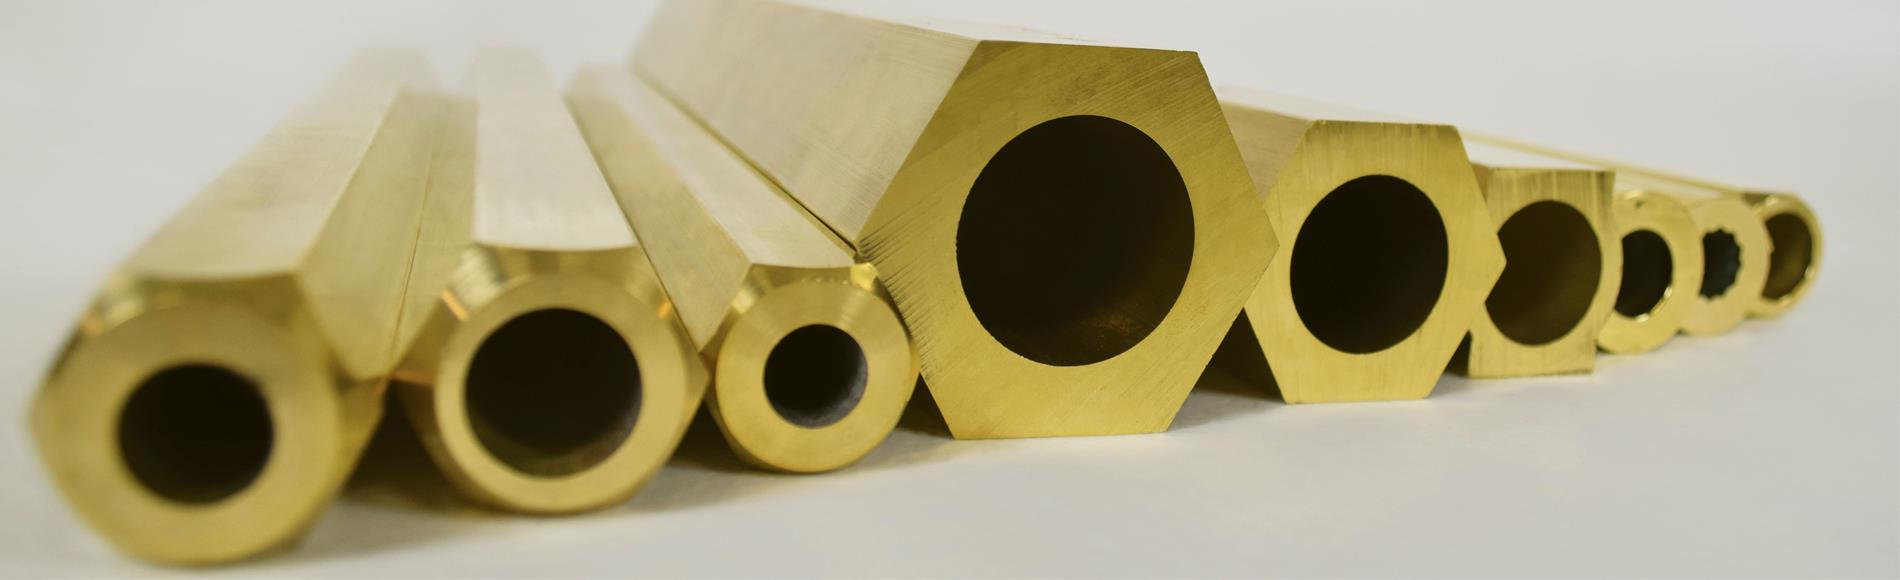 http://www.fitco.gr/userfiles/45aad4a2-7fba-4093-8a2a-a6de00bc5a0a/Hollow-Brass-Rods_1.jpg?quality=75&w=1900